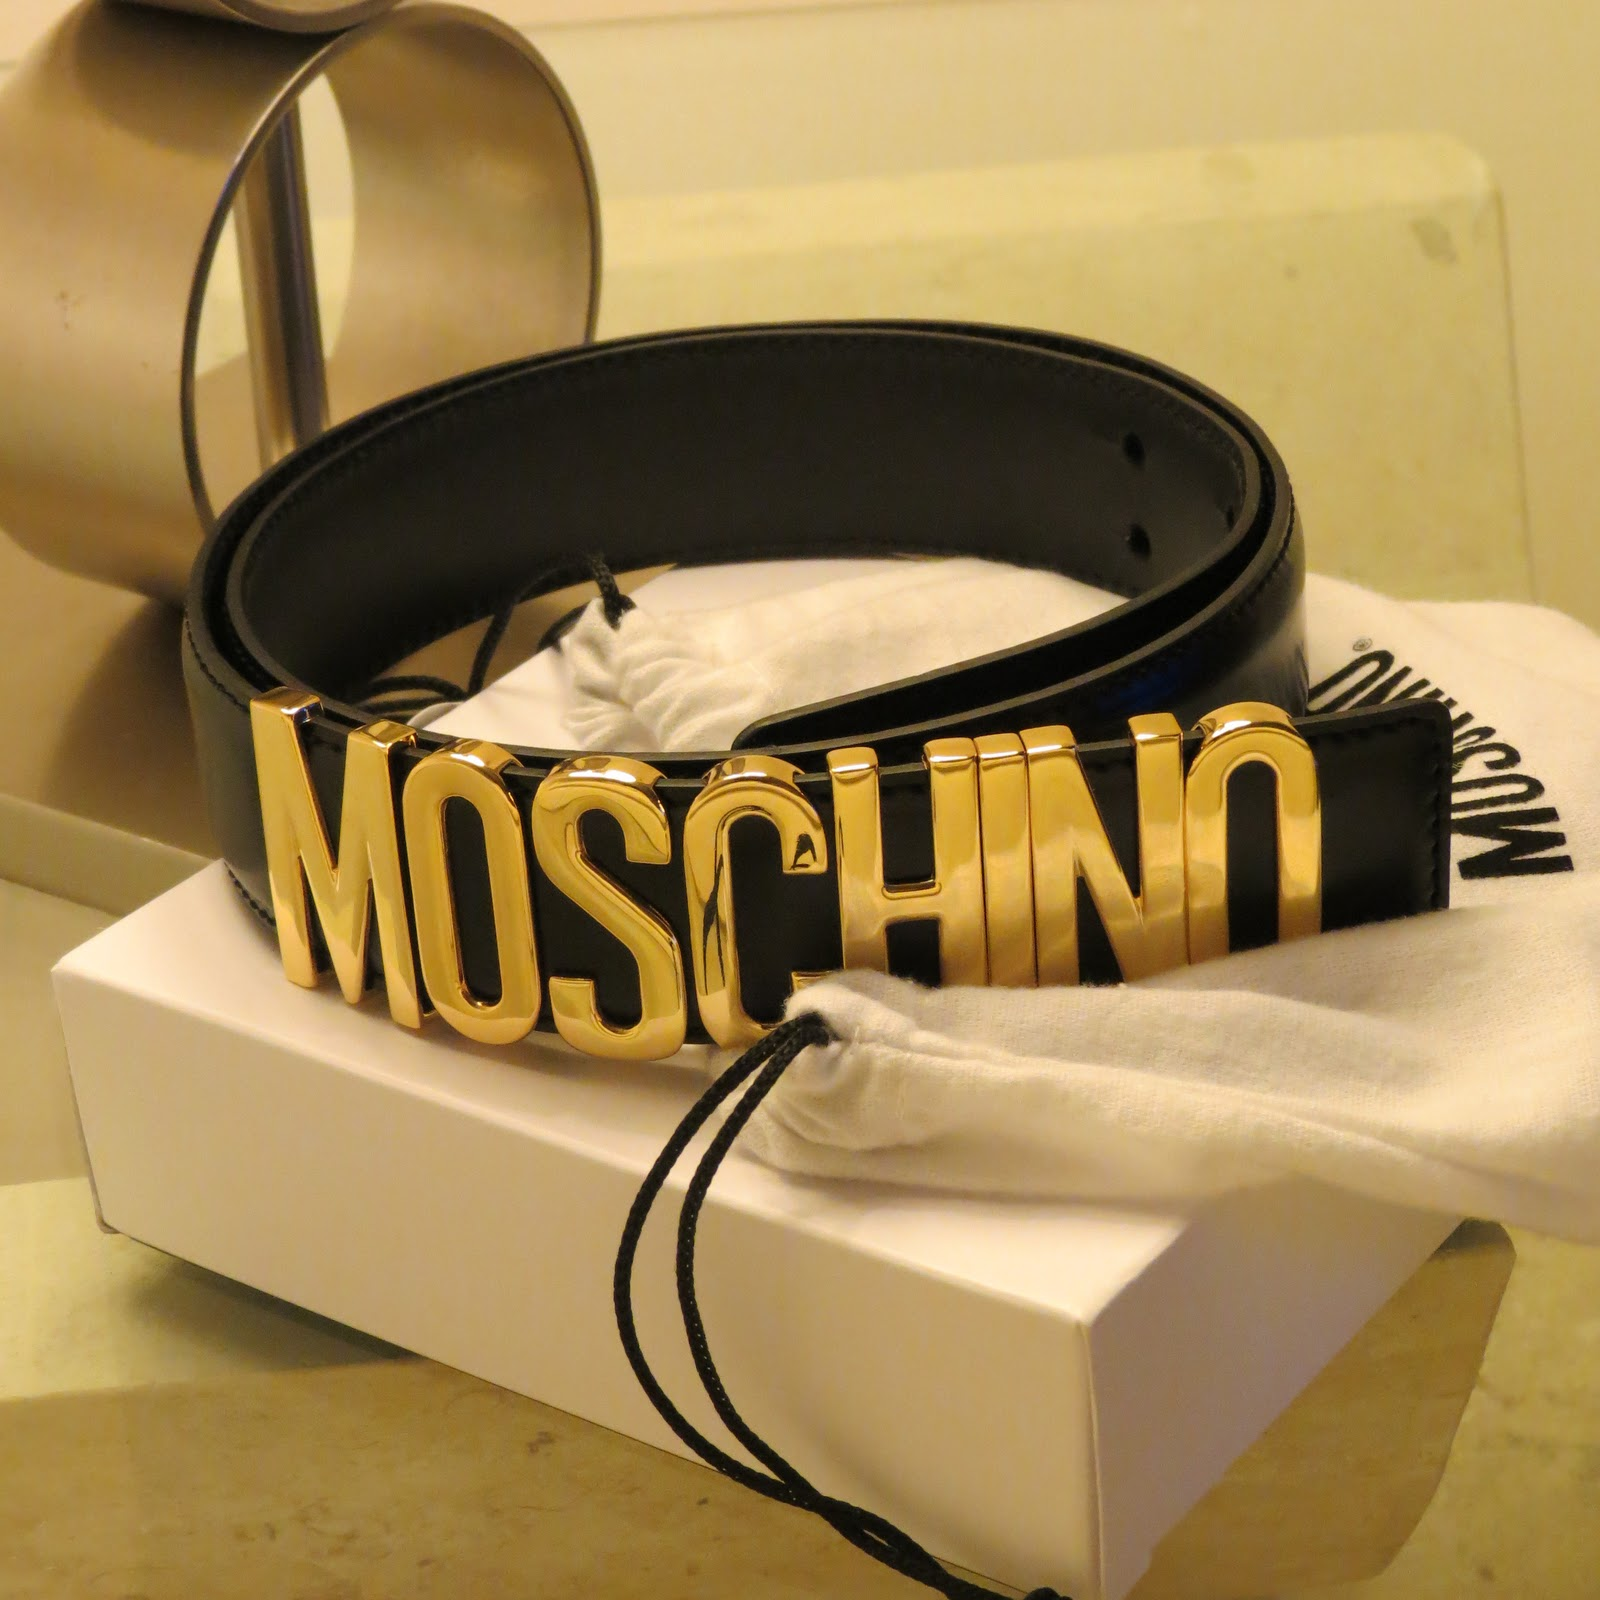 how to wear moschino belt